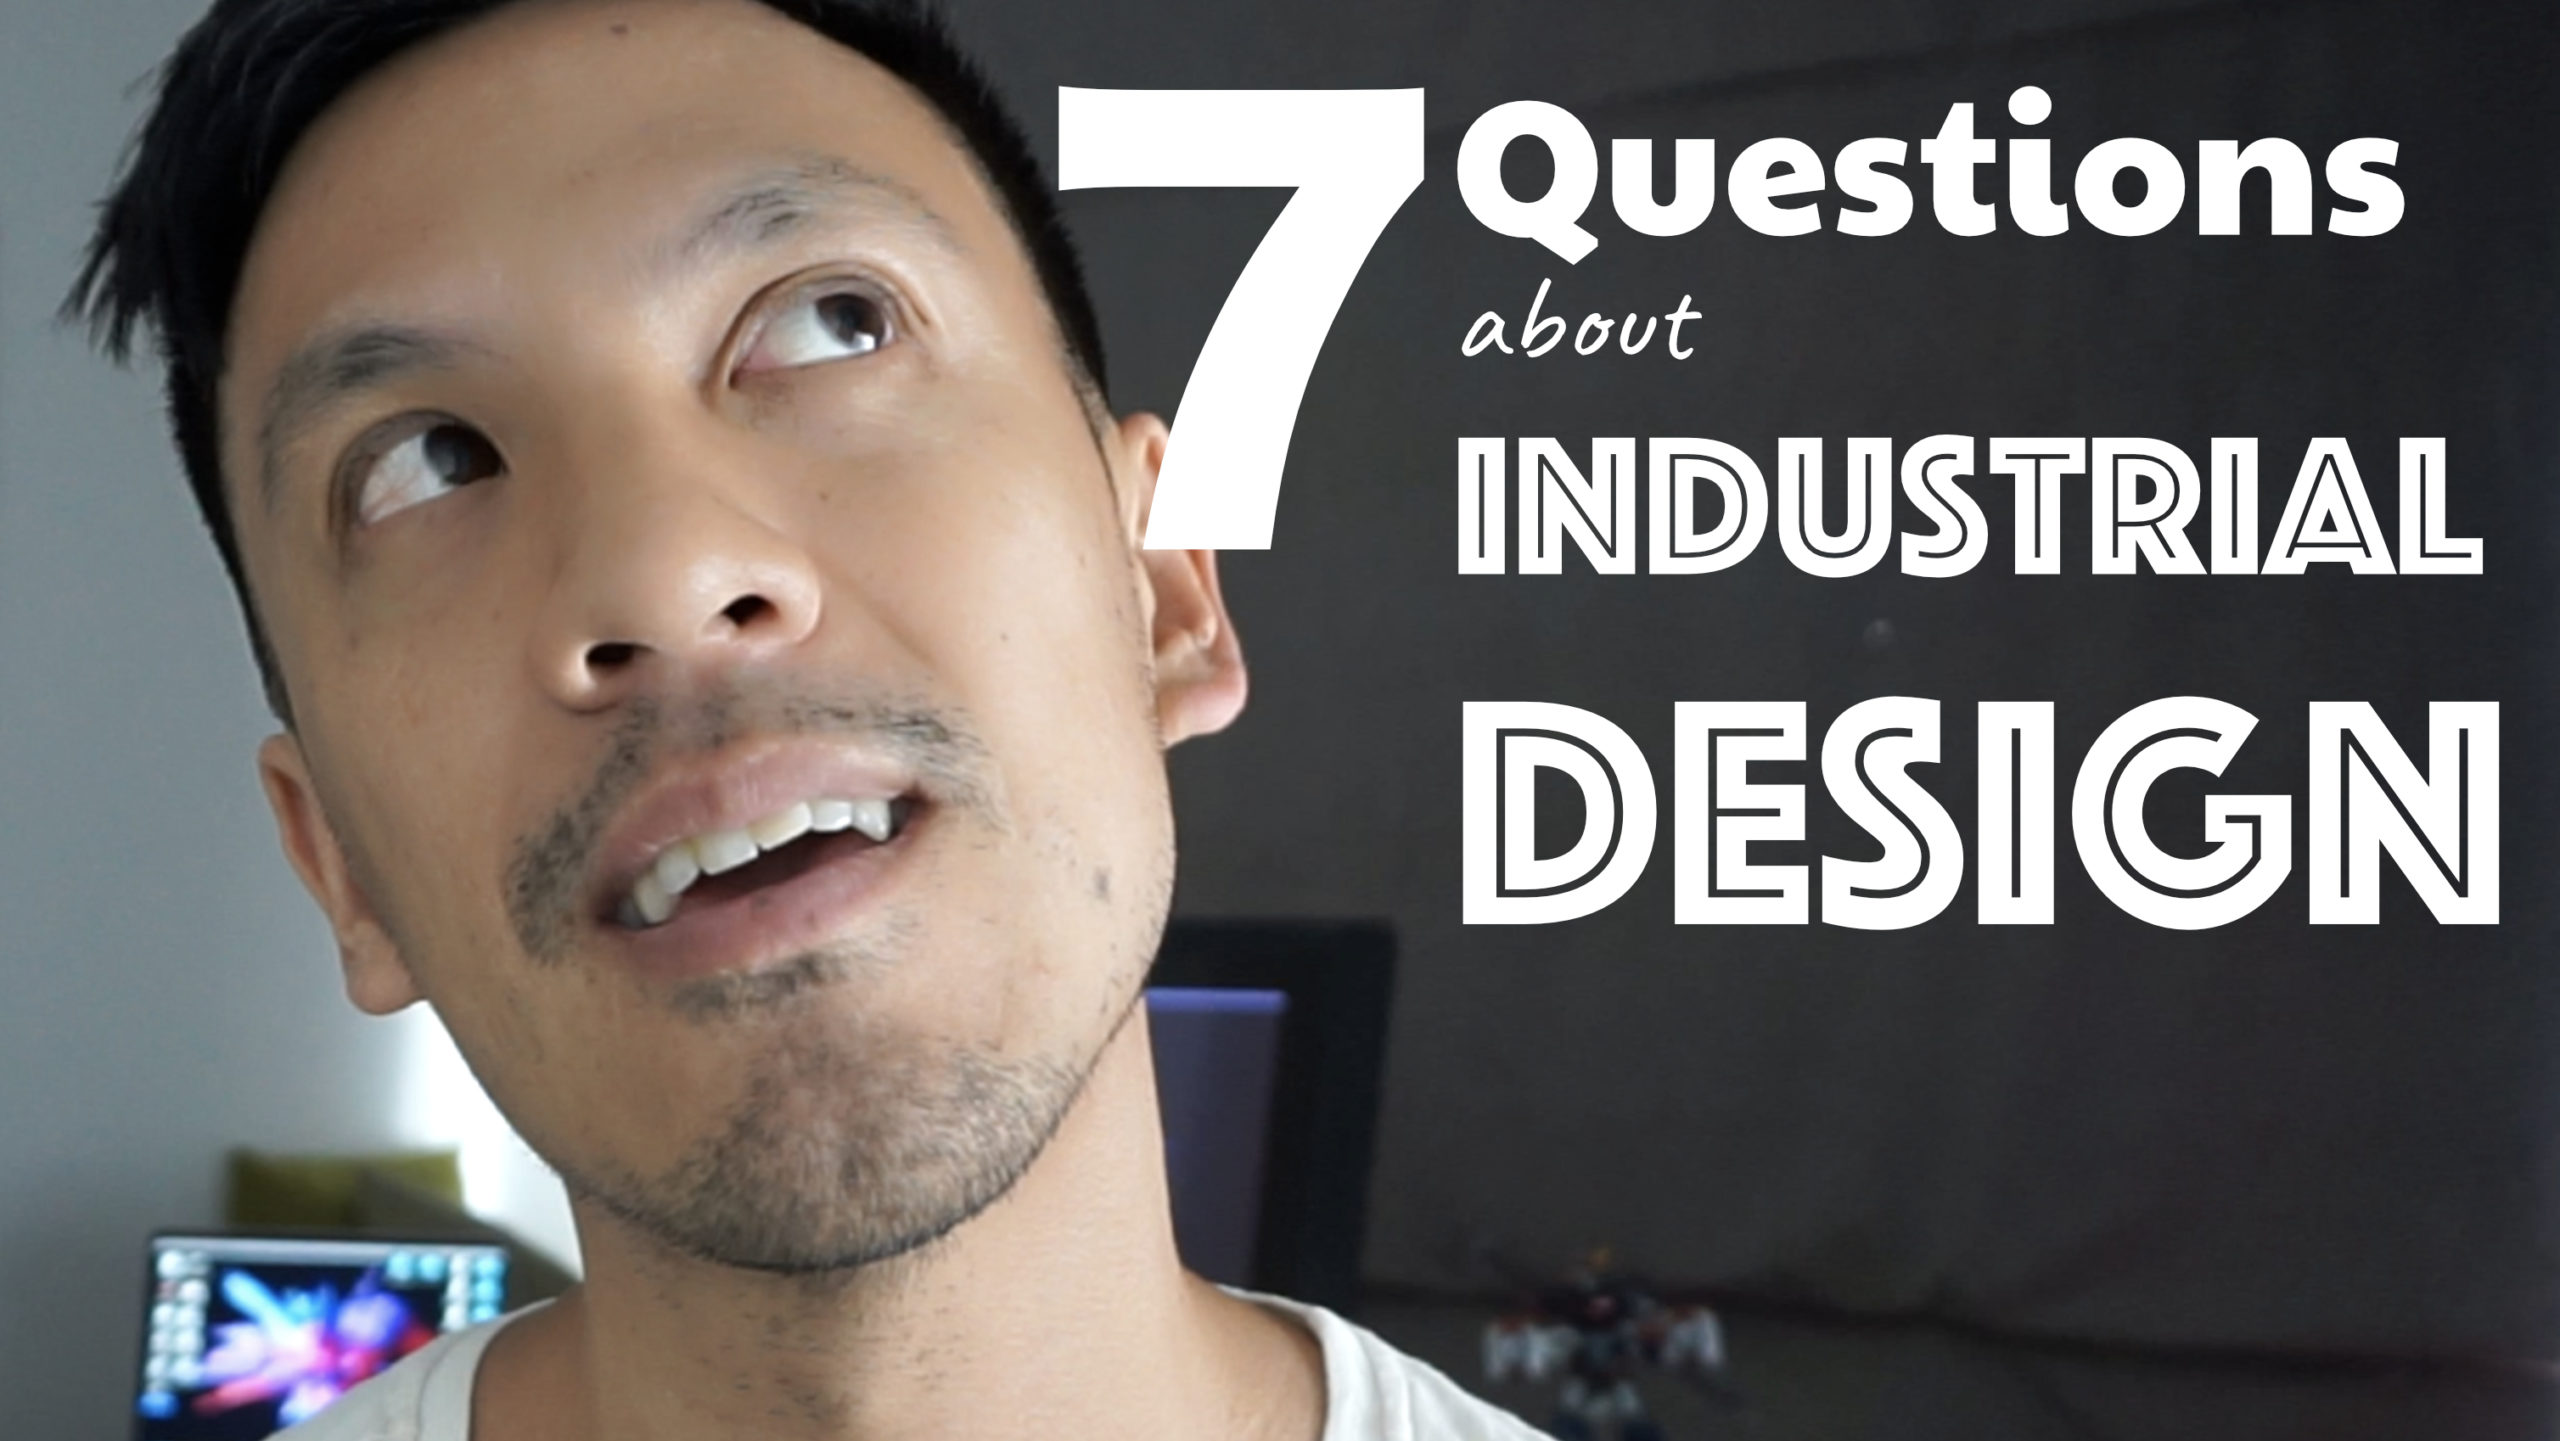 My 7 answers about Industrial Design!